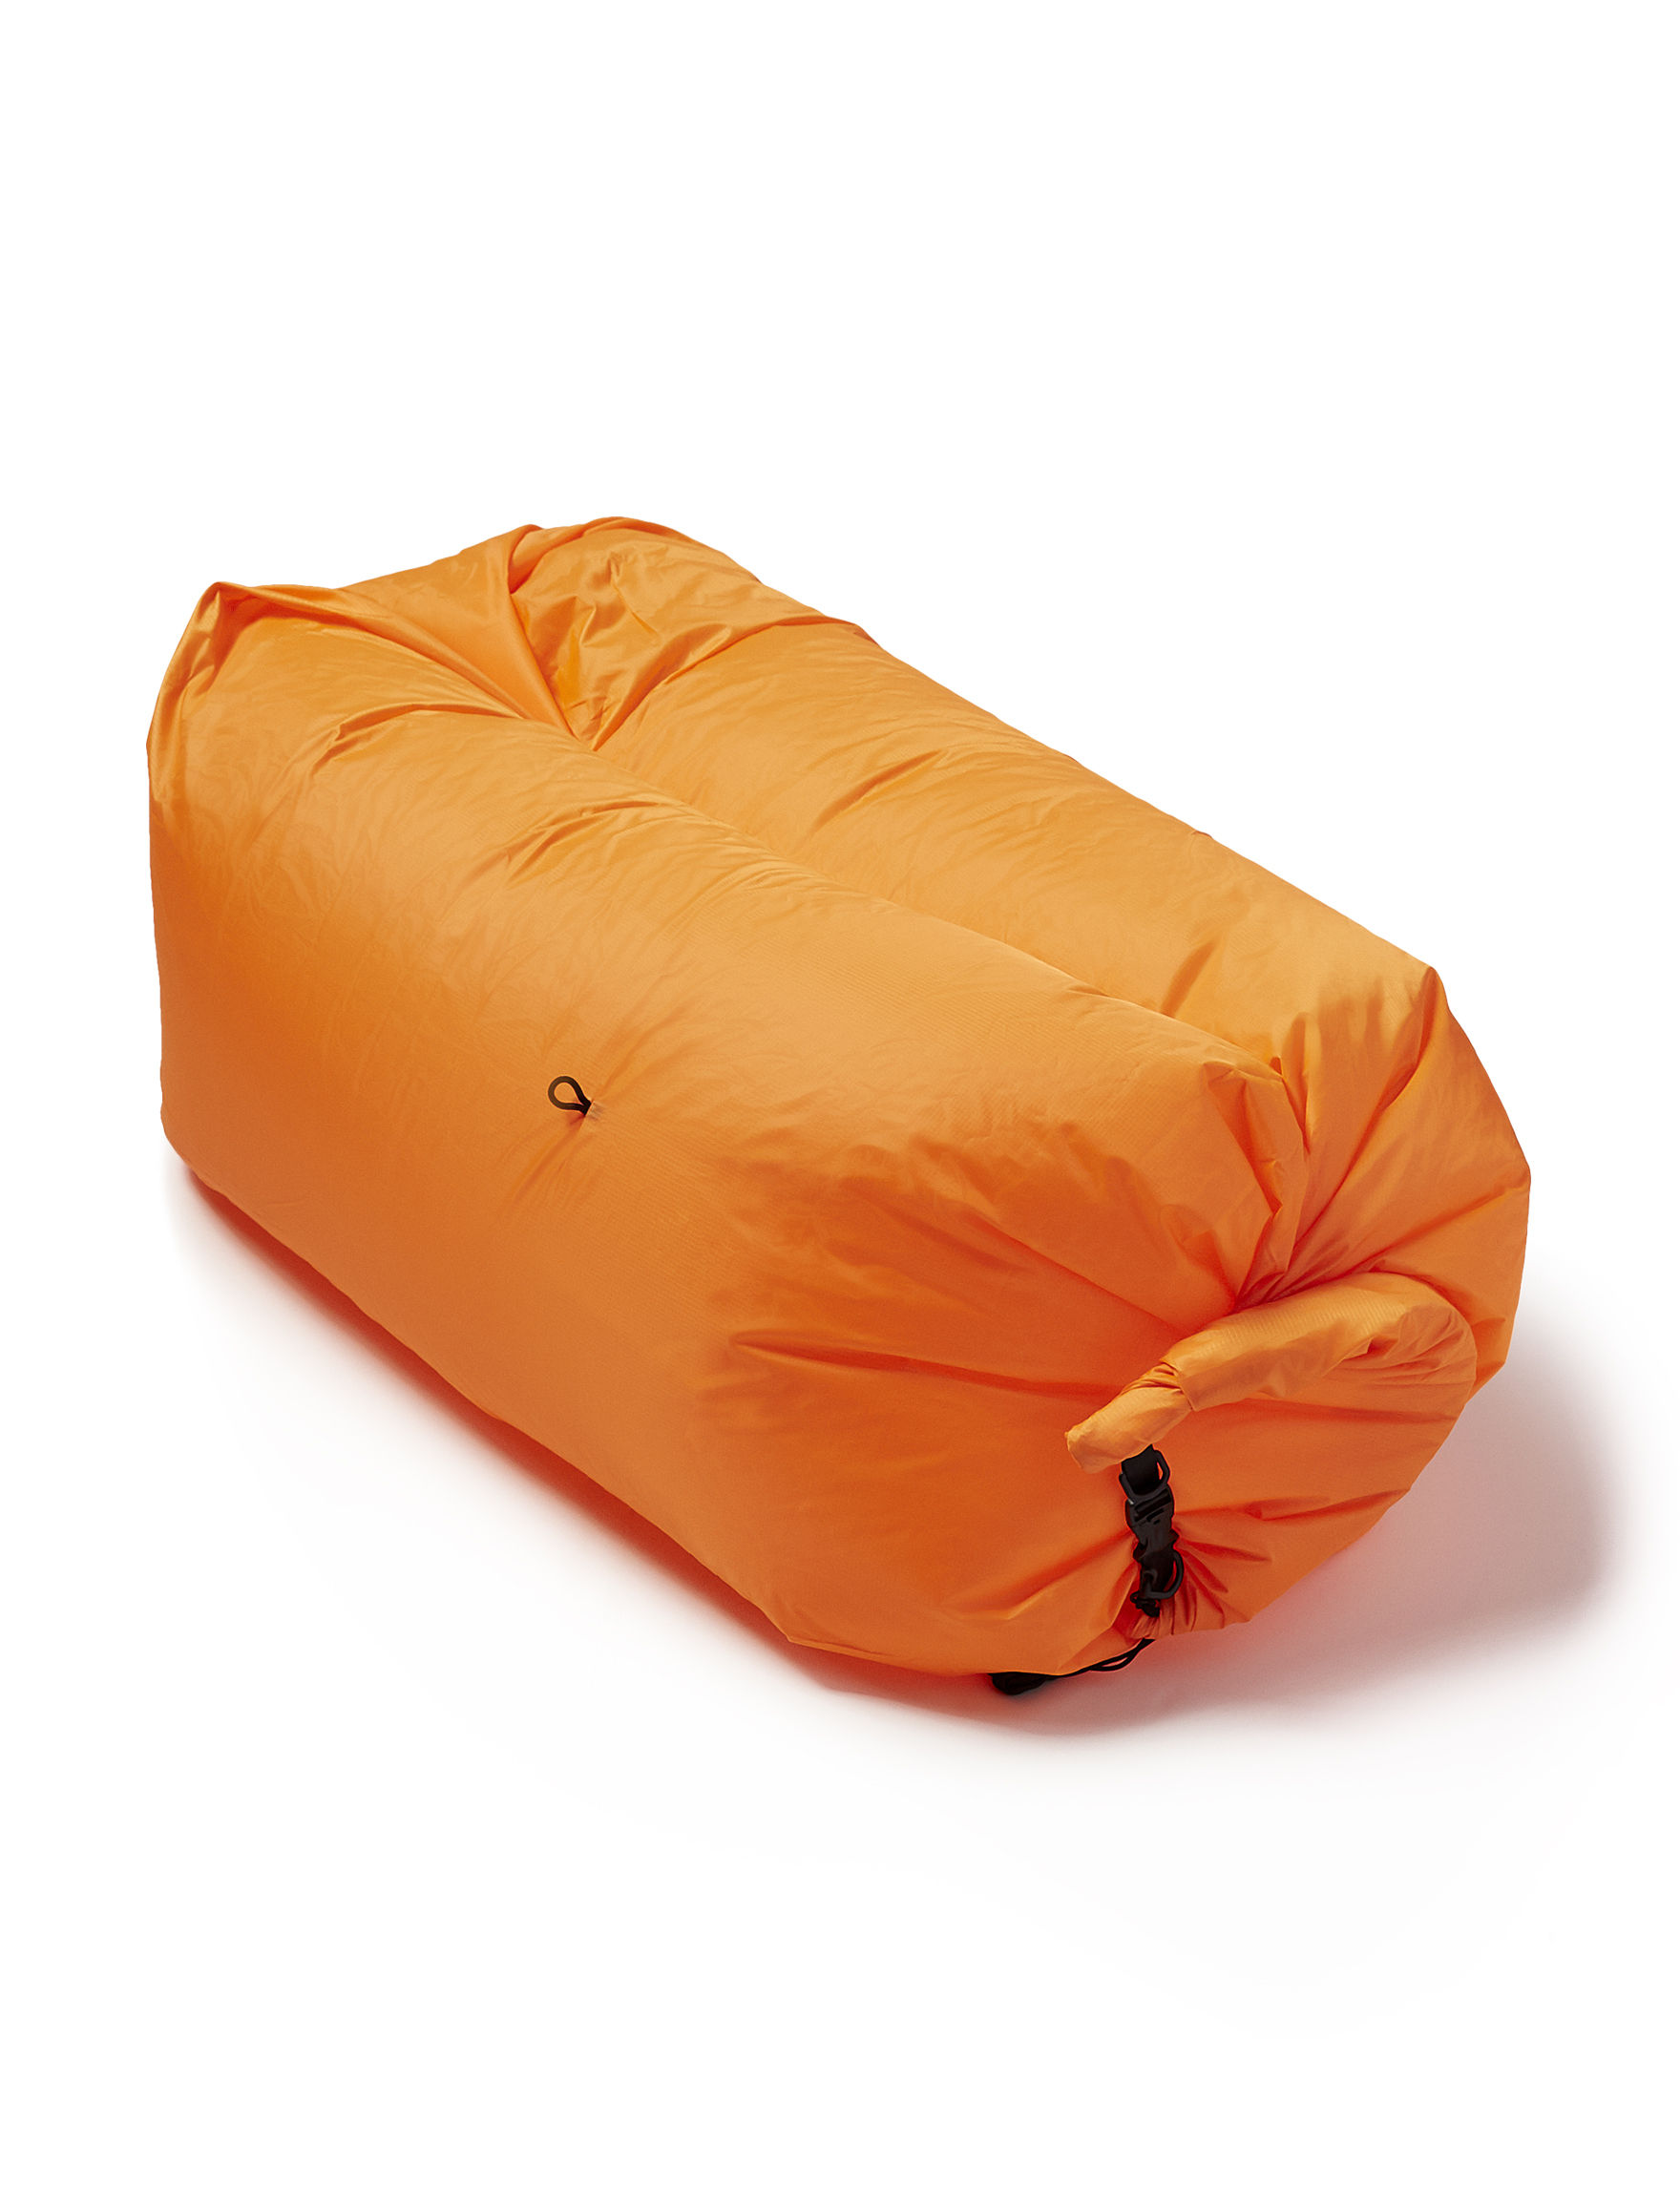 Windrester Orange / White Camping & Outdoor Gear